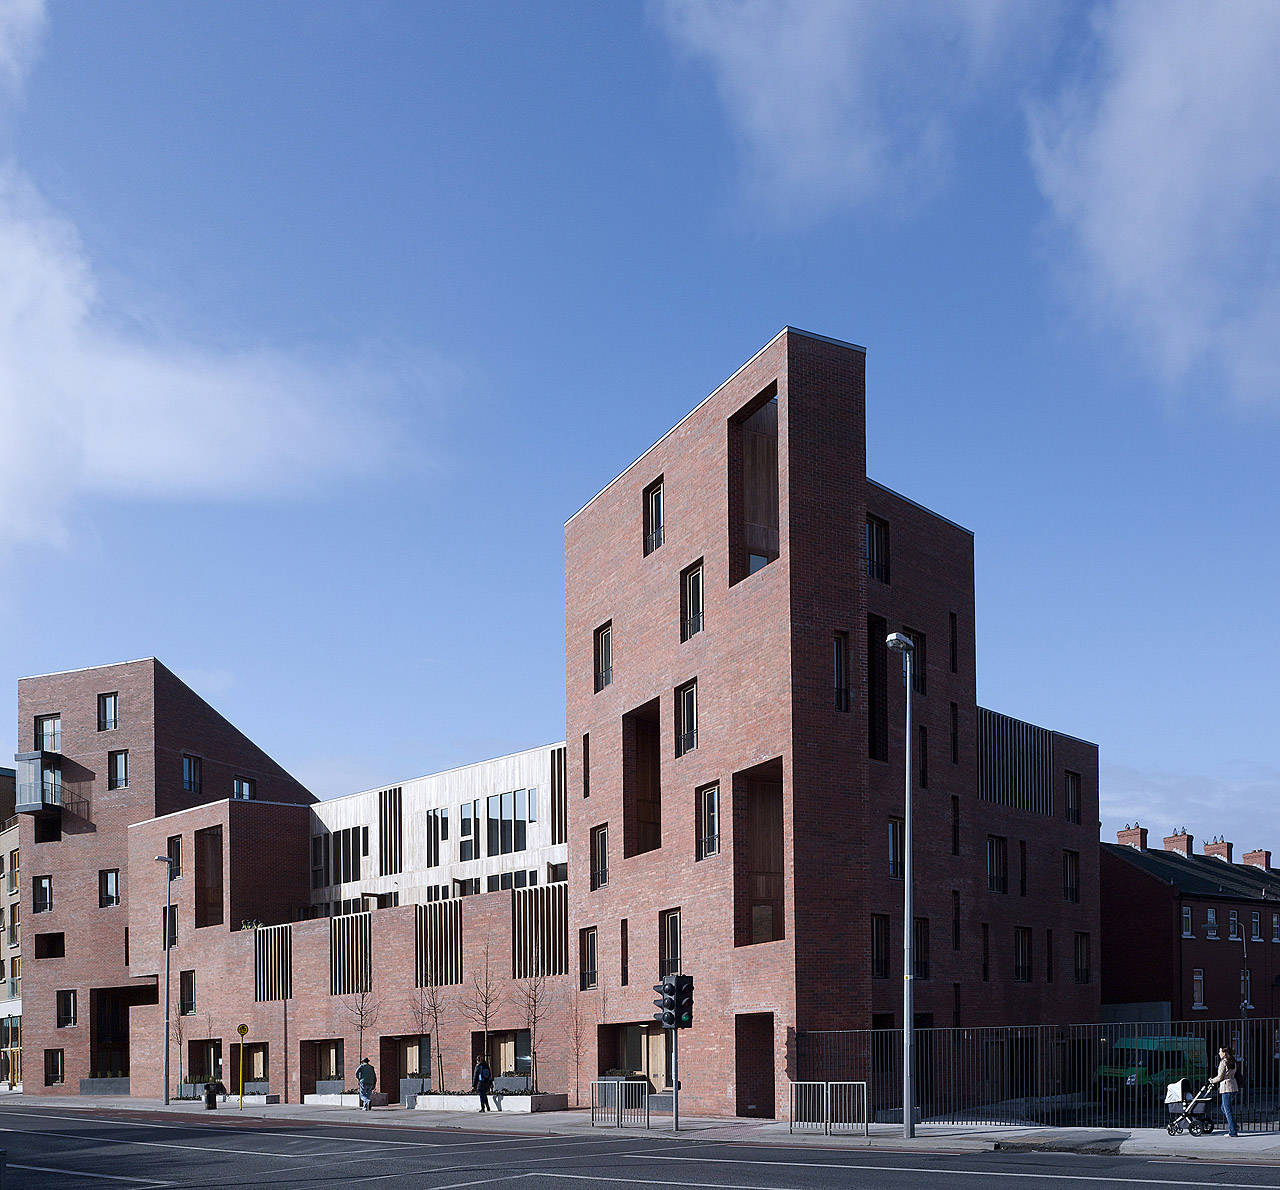 Timberyard Social Housing / O'Donnell + Tuomey Architects, © Dennis Gilbert